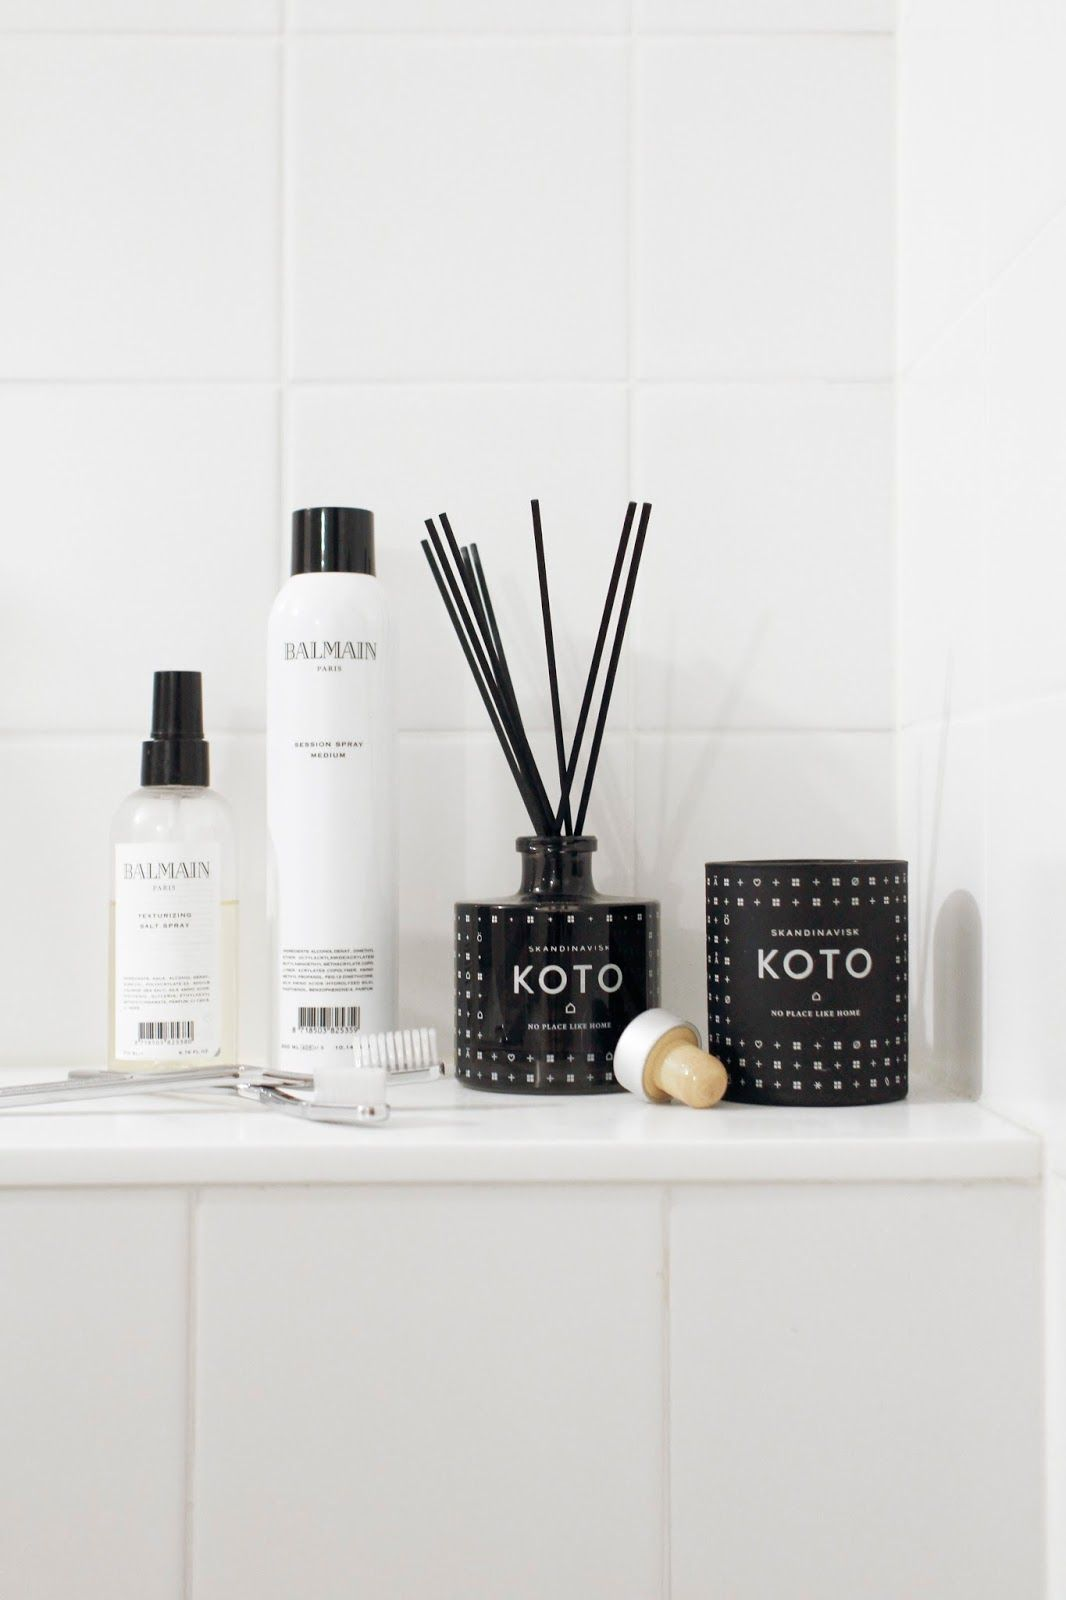 Koto scented candle and reed diffuser by Skandinavisk. From the blog Varpunen, picture by Susanna Vento.